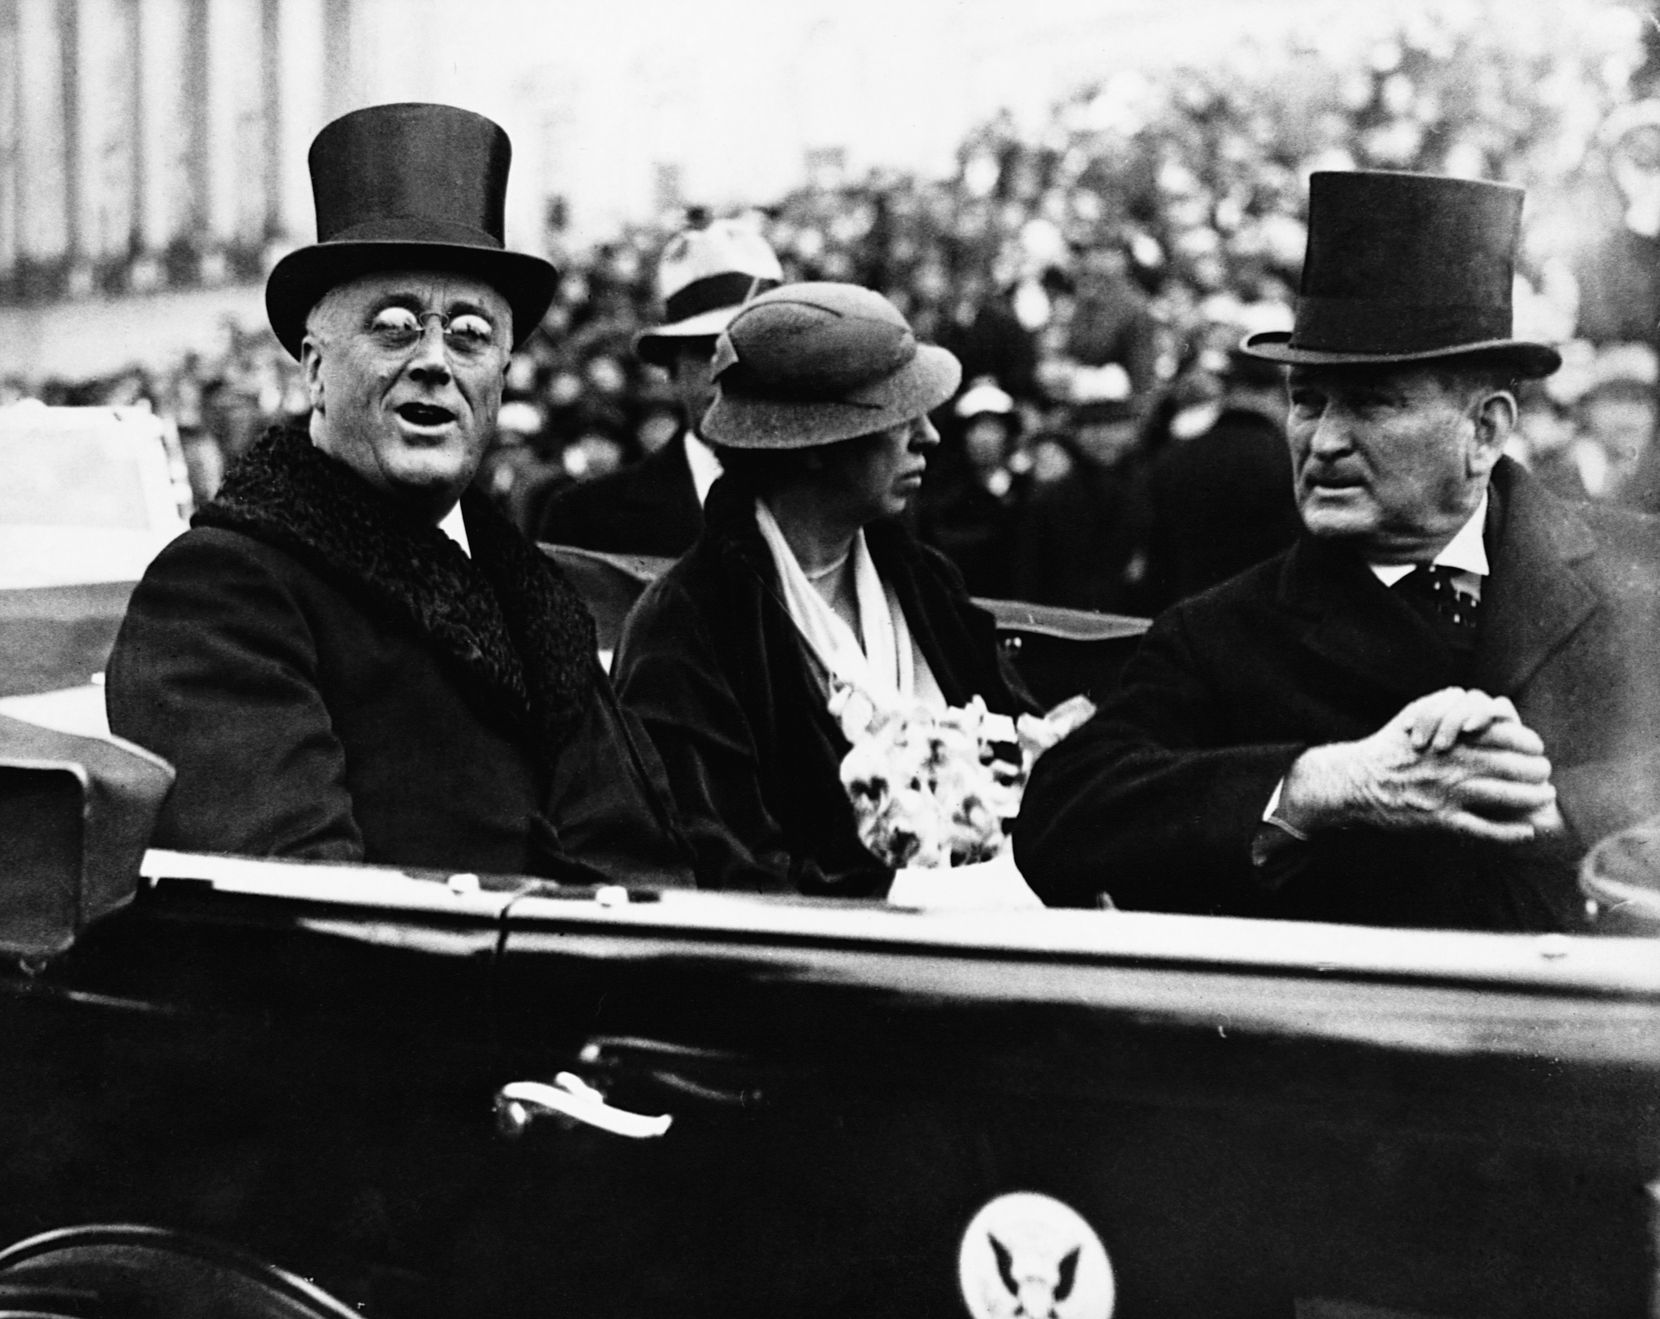 President Franklin Roosevelt and first lady Eleanor Roosevelt leave the Capitol after inaugural ceremonies of March 4, 1933. With them is Sen. Joseph Robinson of Indiana, the Democratic majority leader.